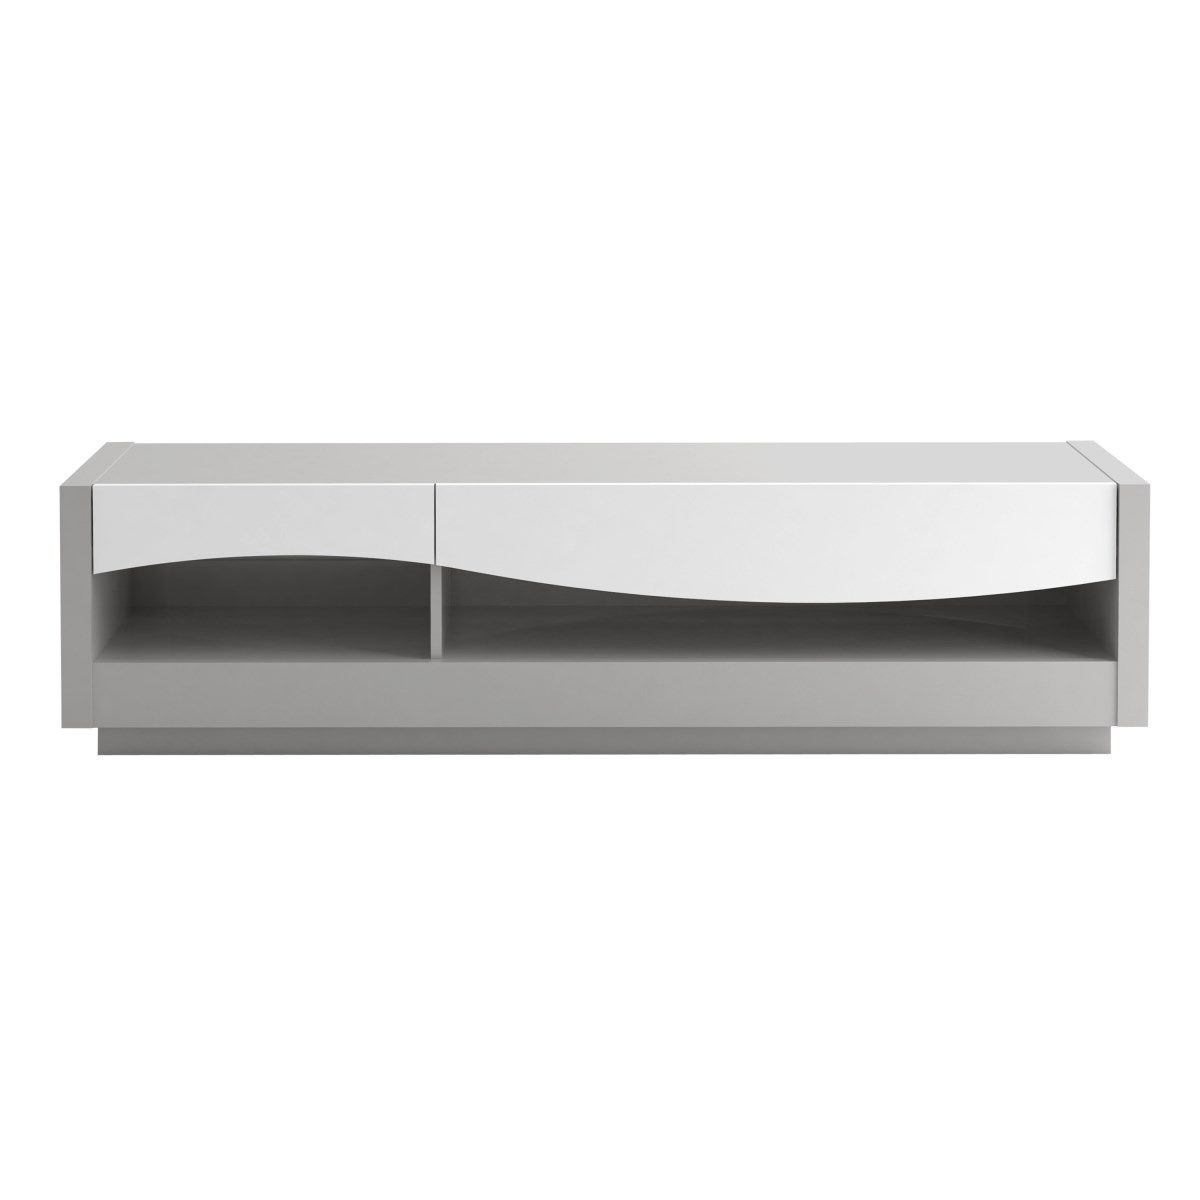 Newest Archibald White High Gloss And Grey Tv Unit 178Cm Pertaining To White High Gloss Tv Stands (Gallery 17 of 20)